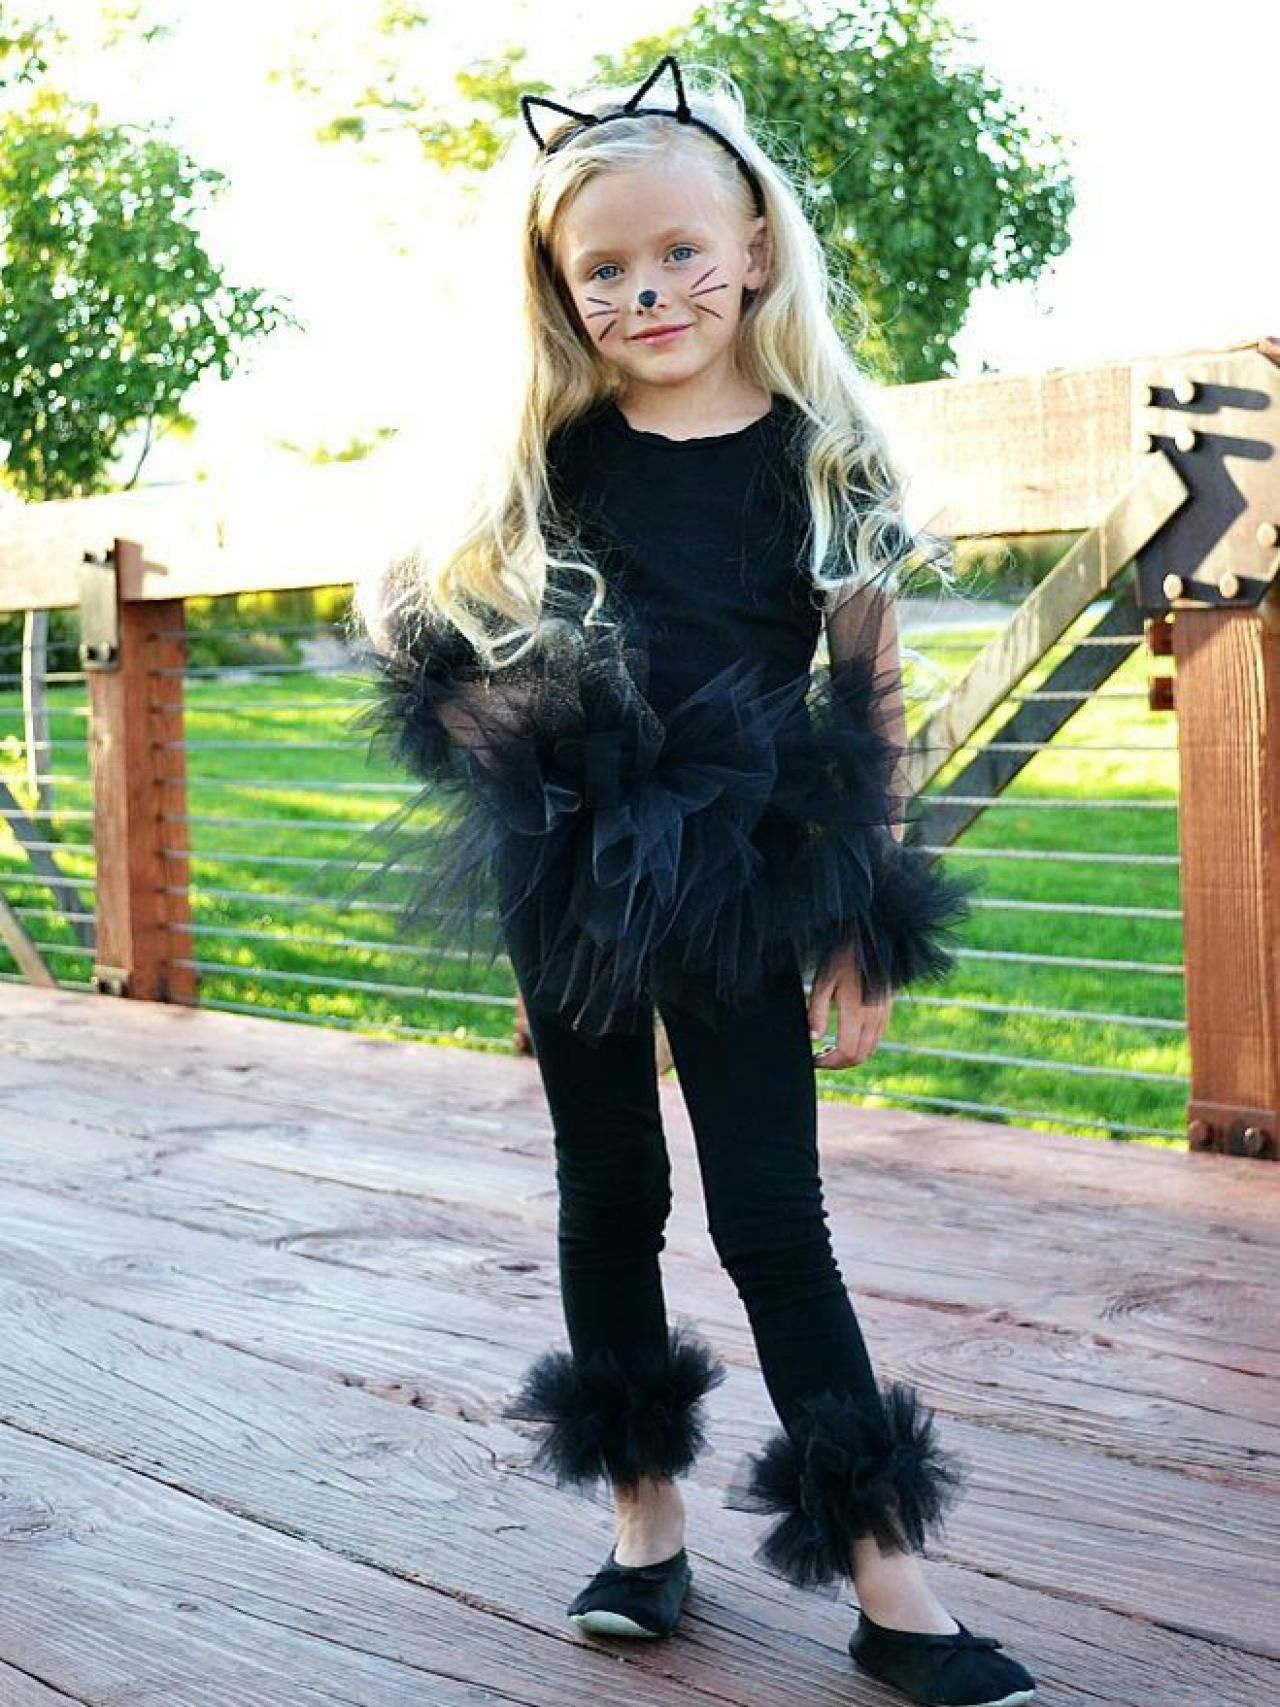 How to Make an Easy Black Cat Halloween Costume Toddler